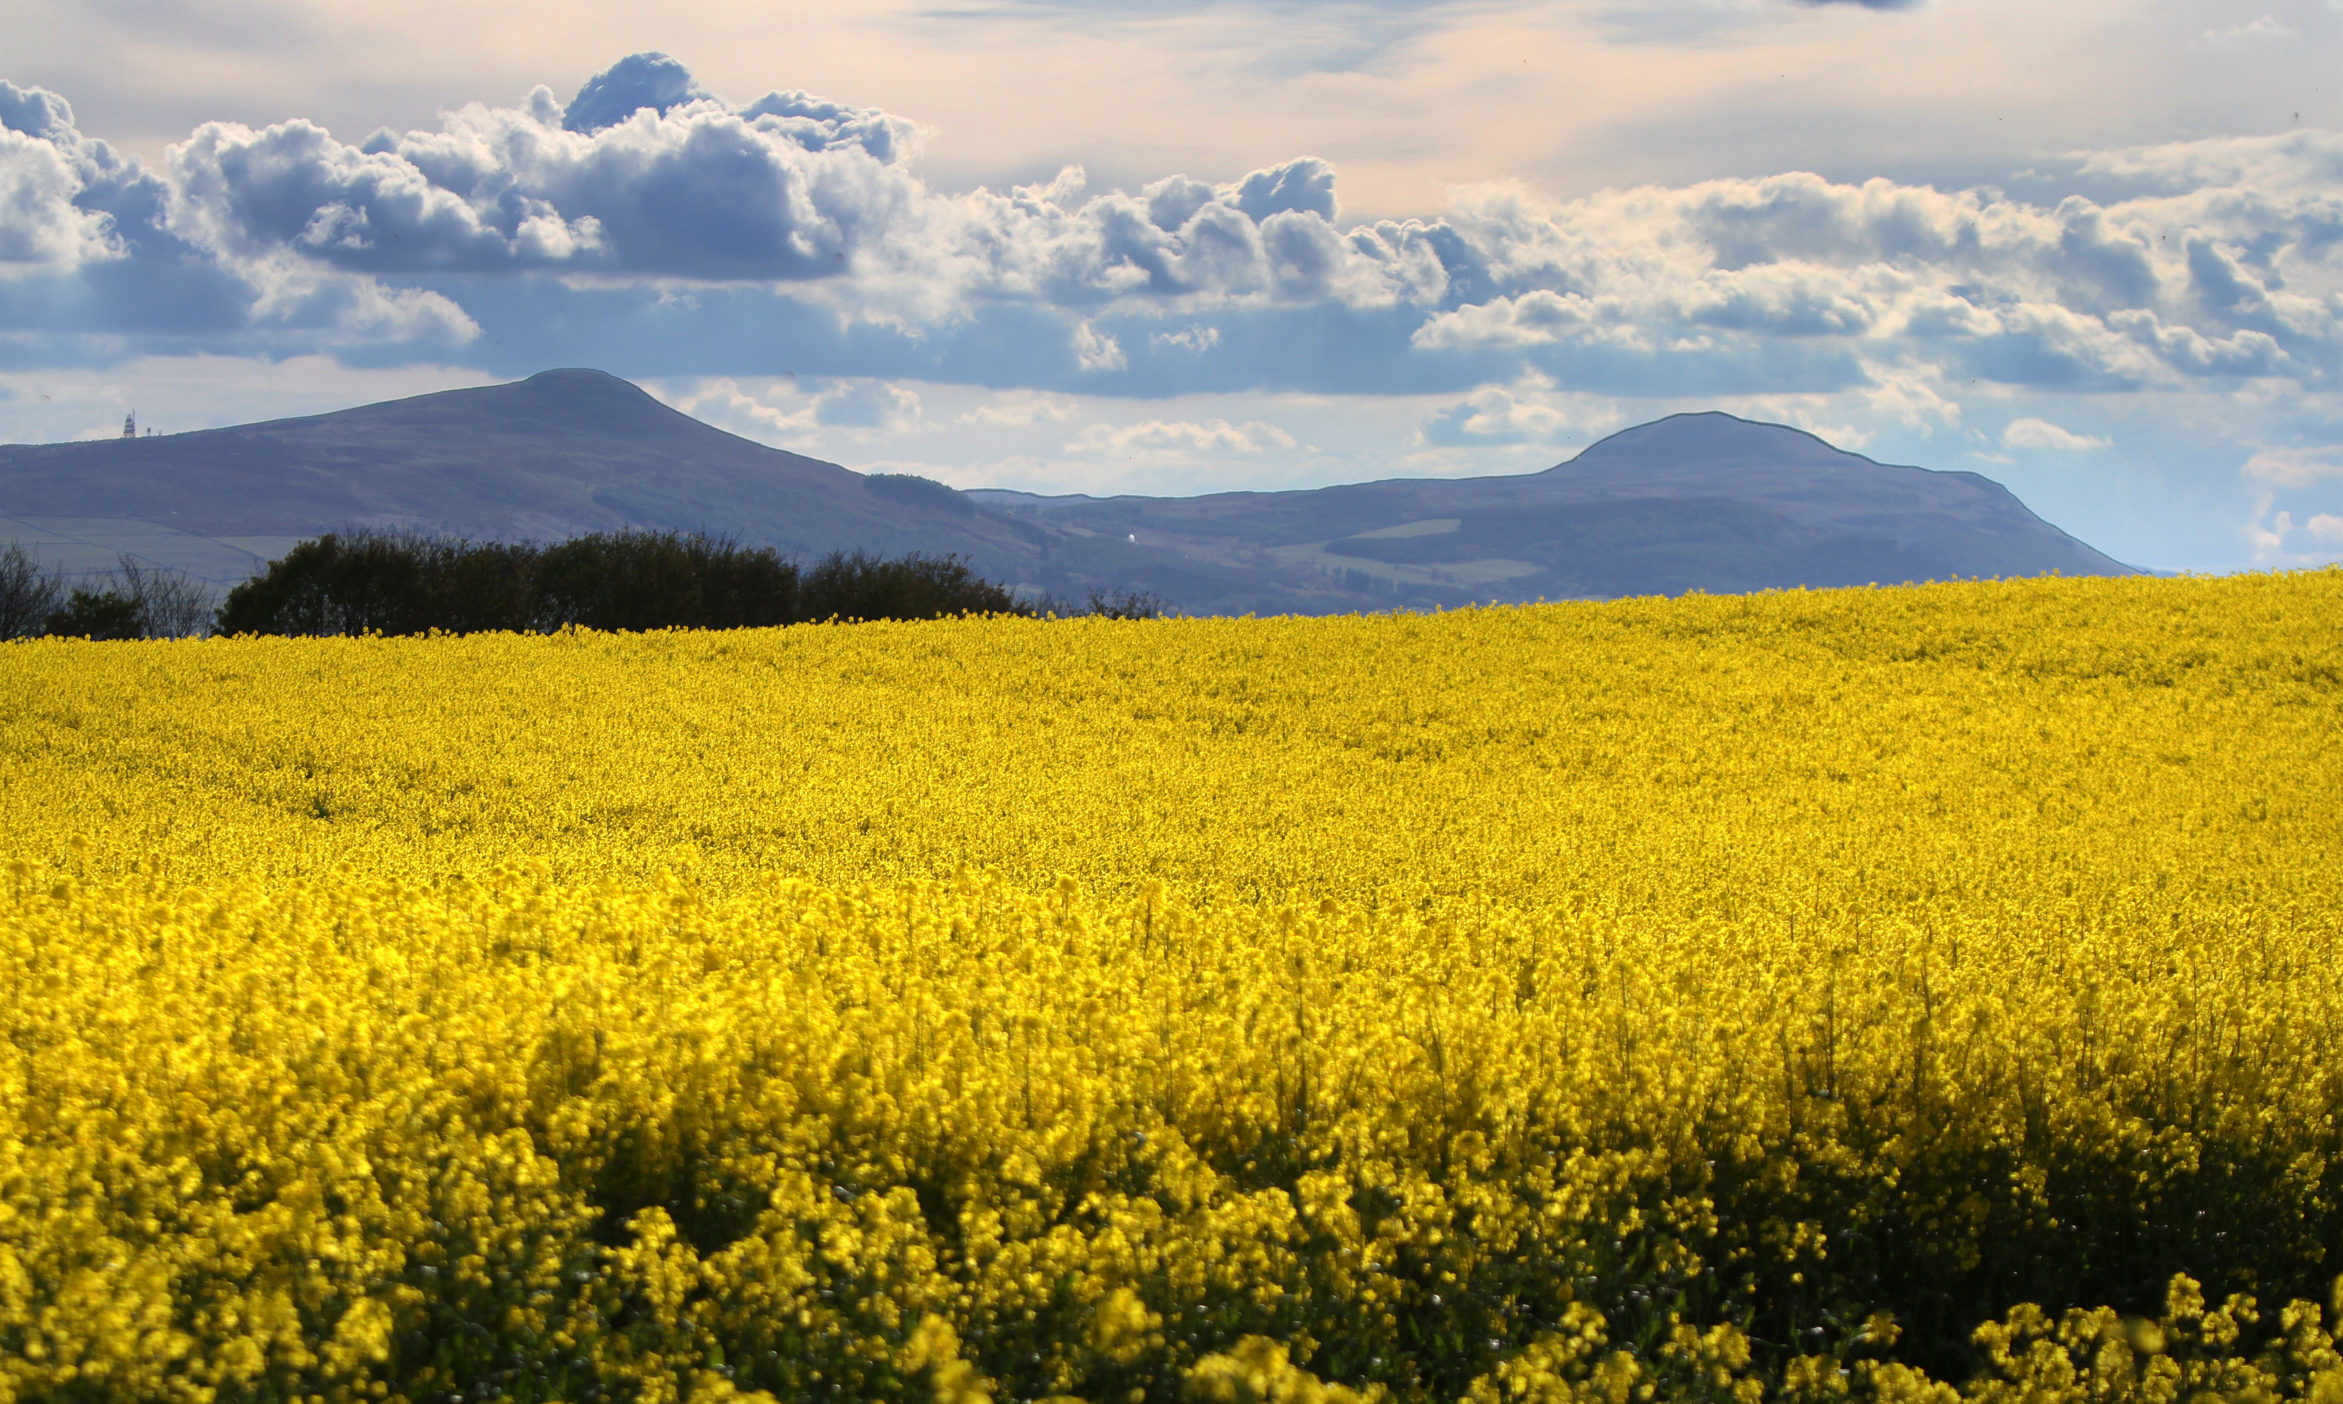 The Lomond Hills viewed from the Howe of Fife